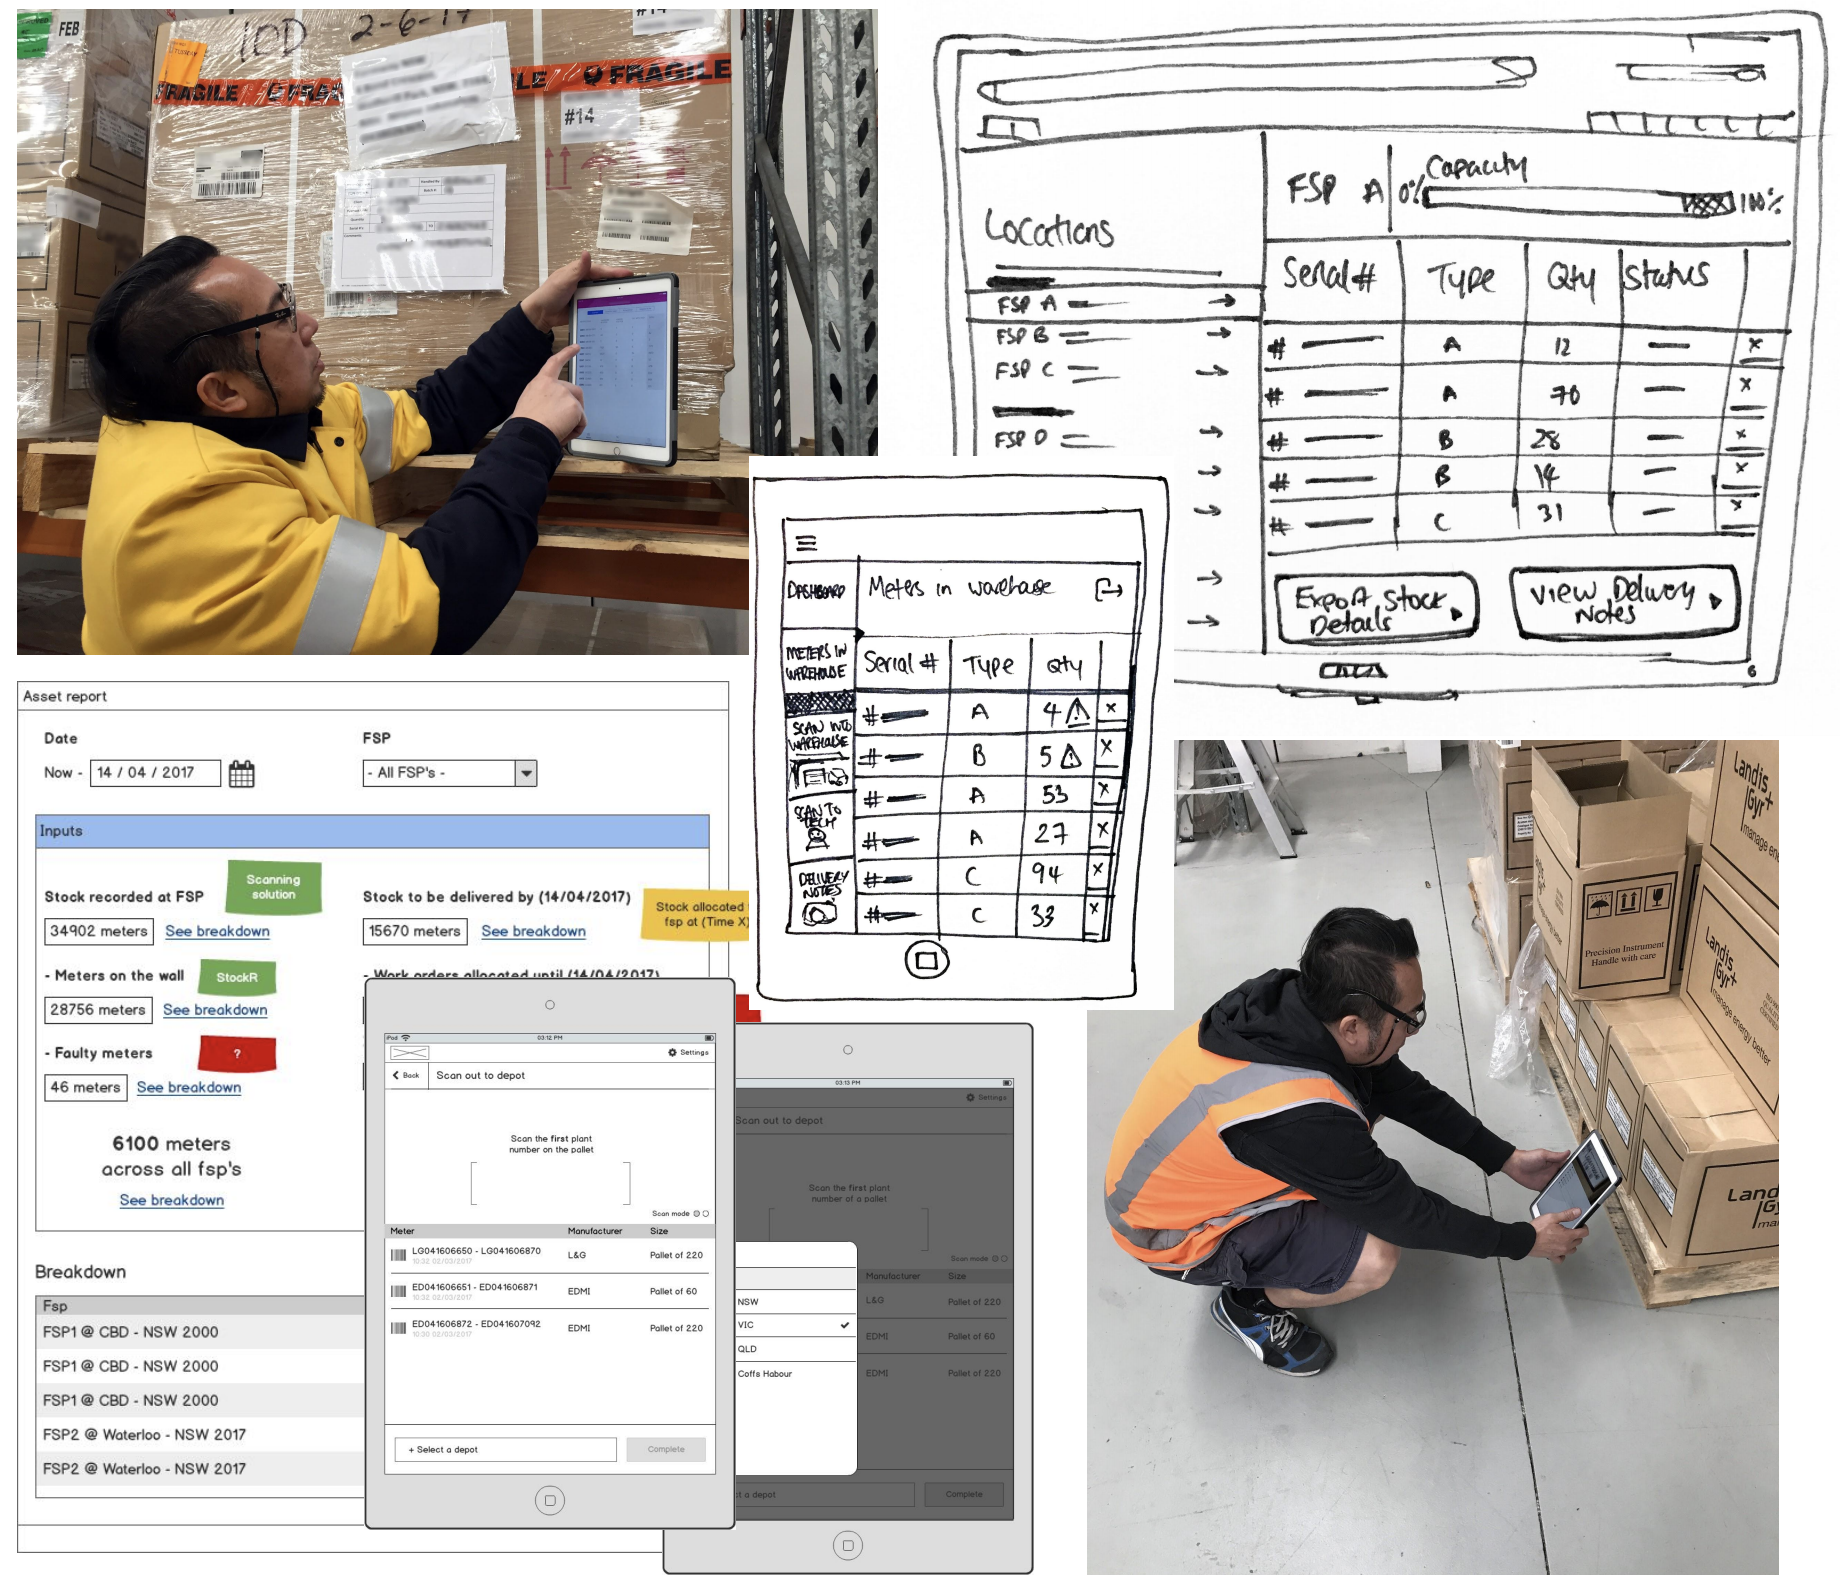 Collage of photos of people using the real application and the wireframes and prototypes used for testing